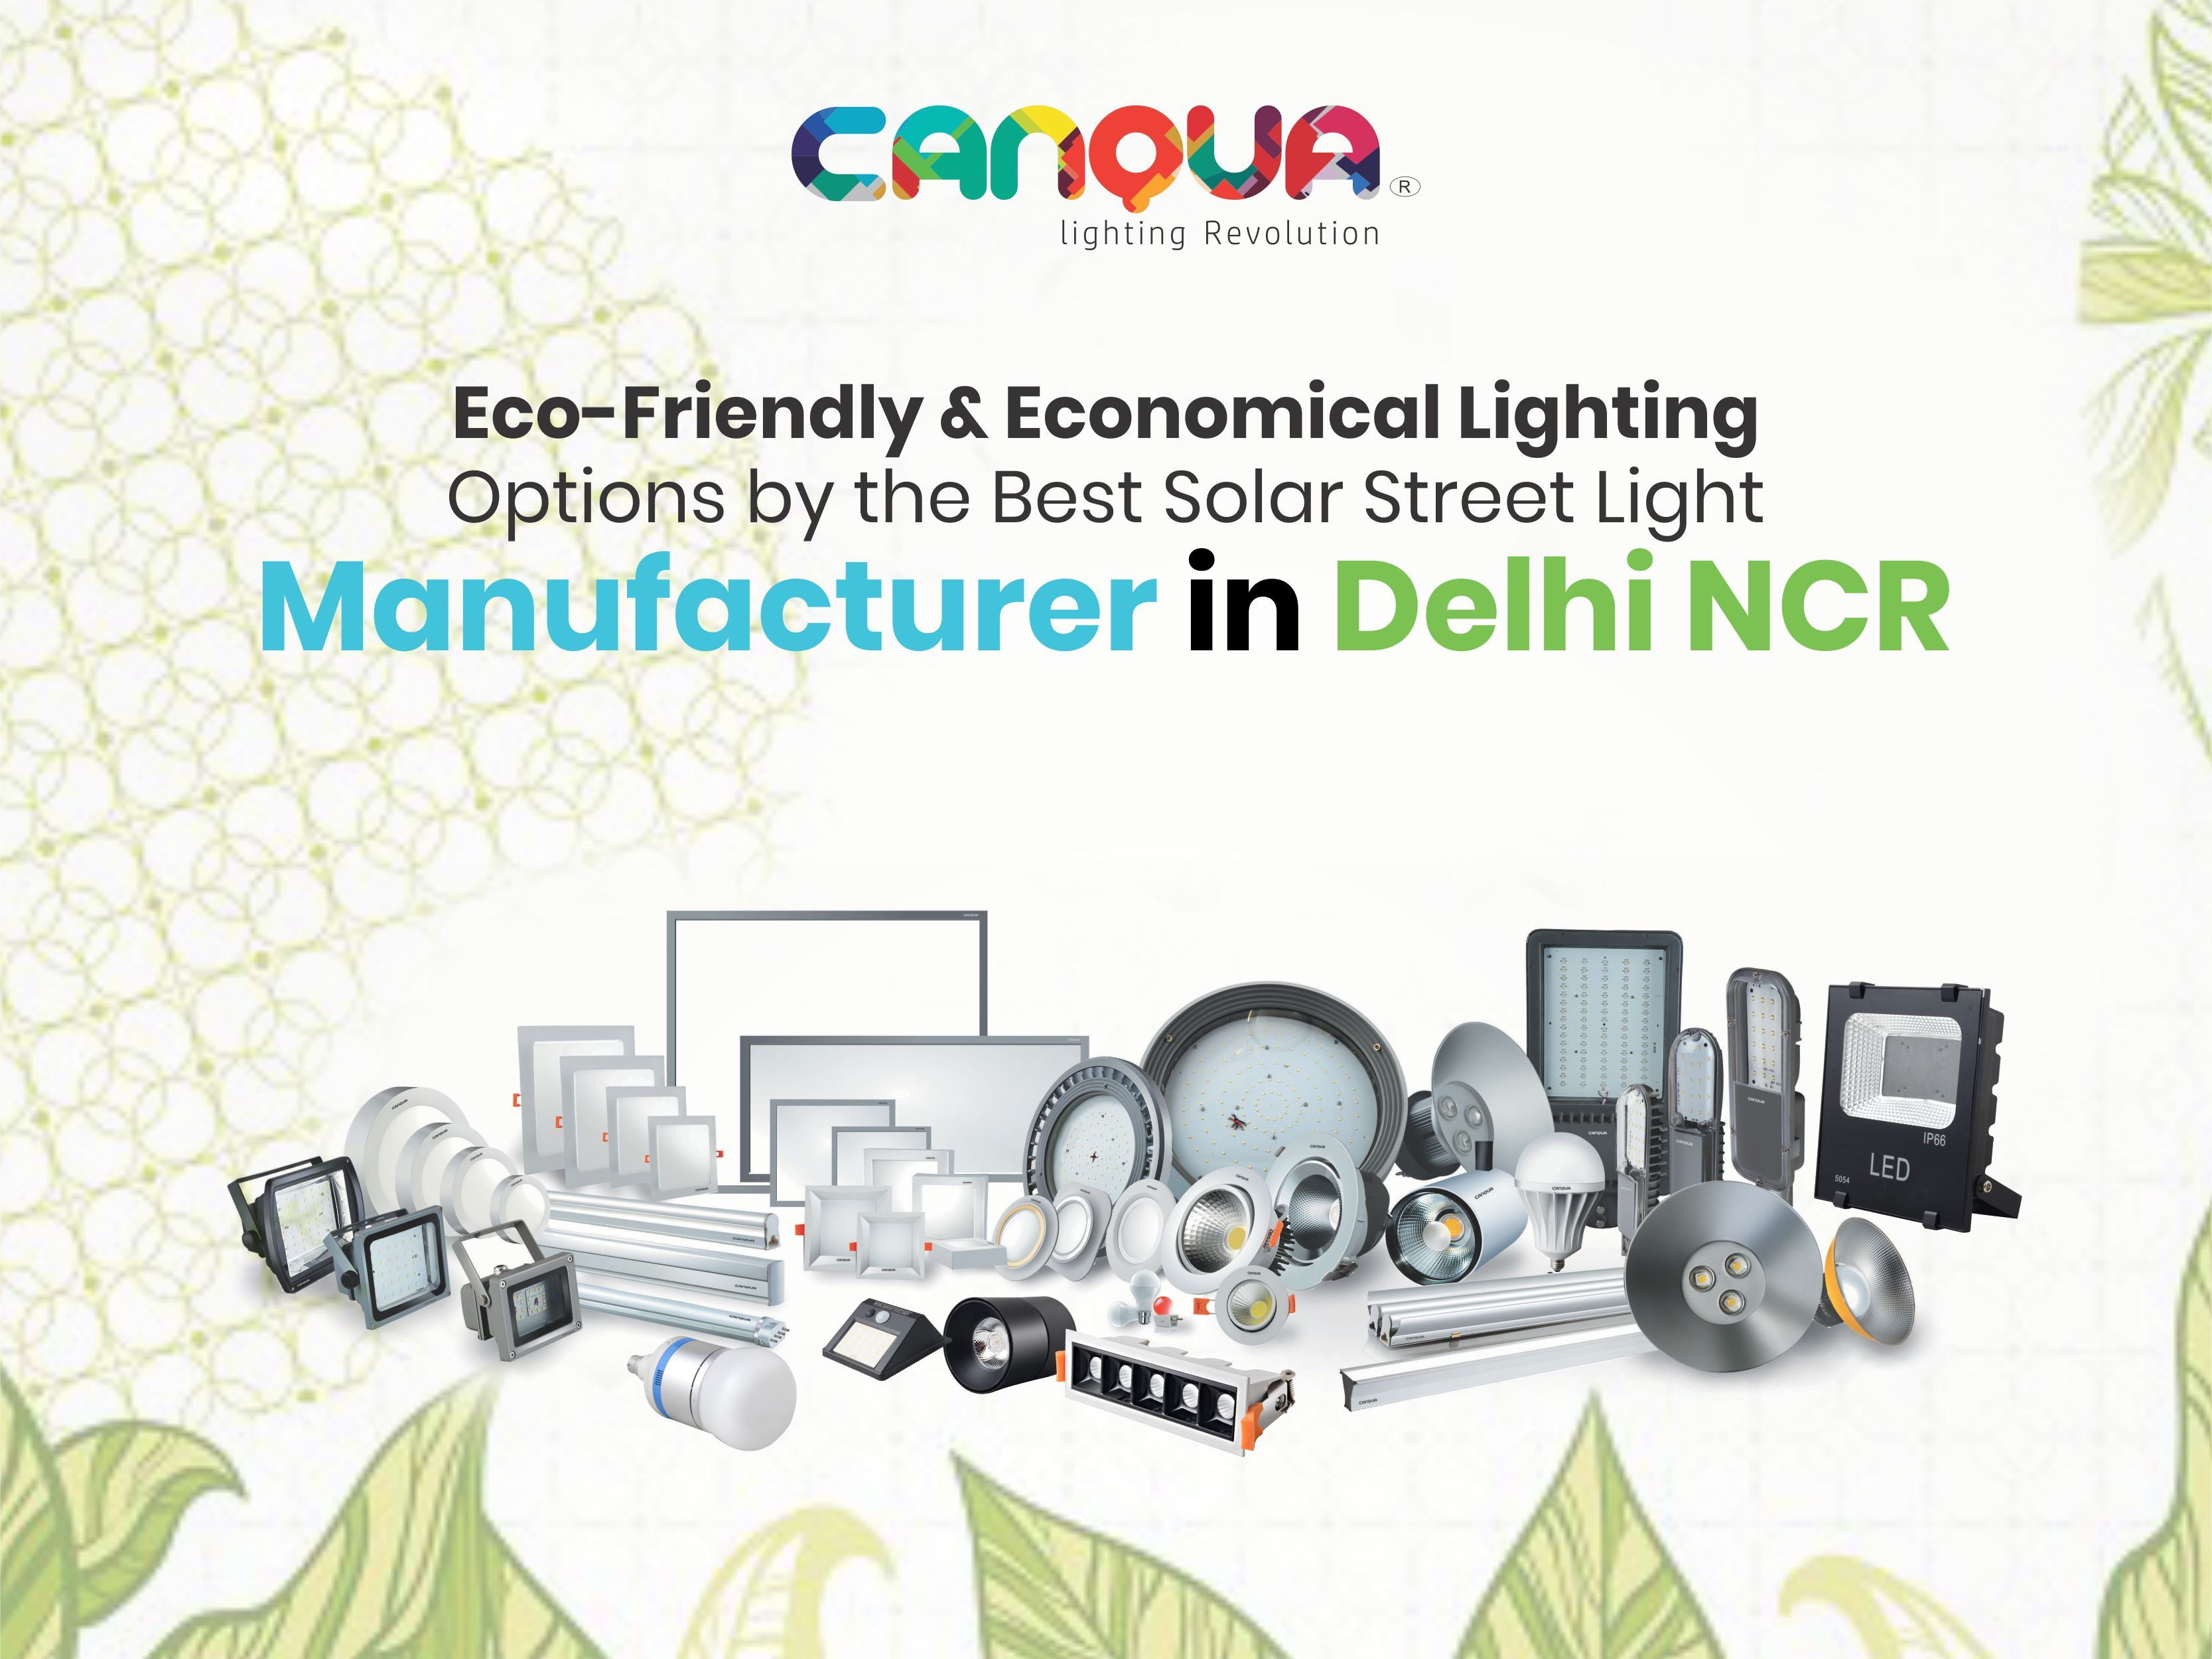 Find Here Led Lights Lights Manufacturers Suppliers Exporters In India Canqua India Is A Leading Manufacturers Exp Led Lights Led Lighting Solutions Led